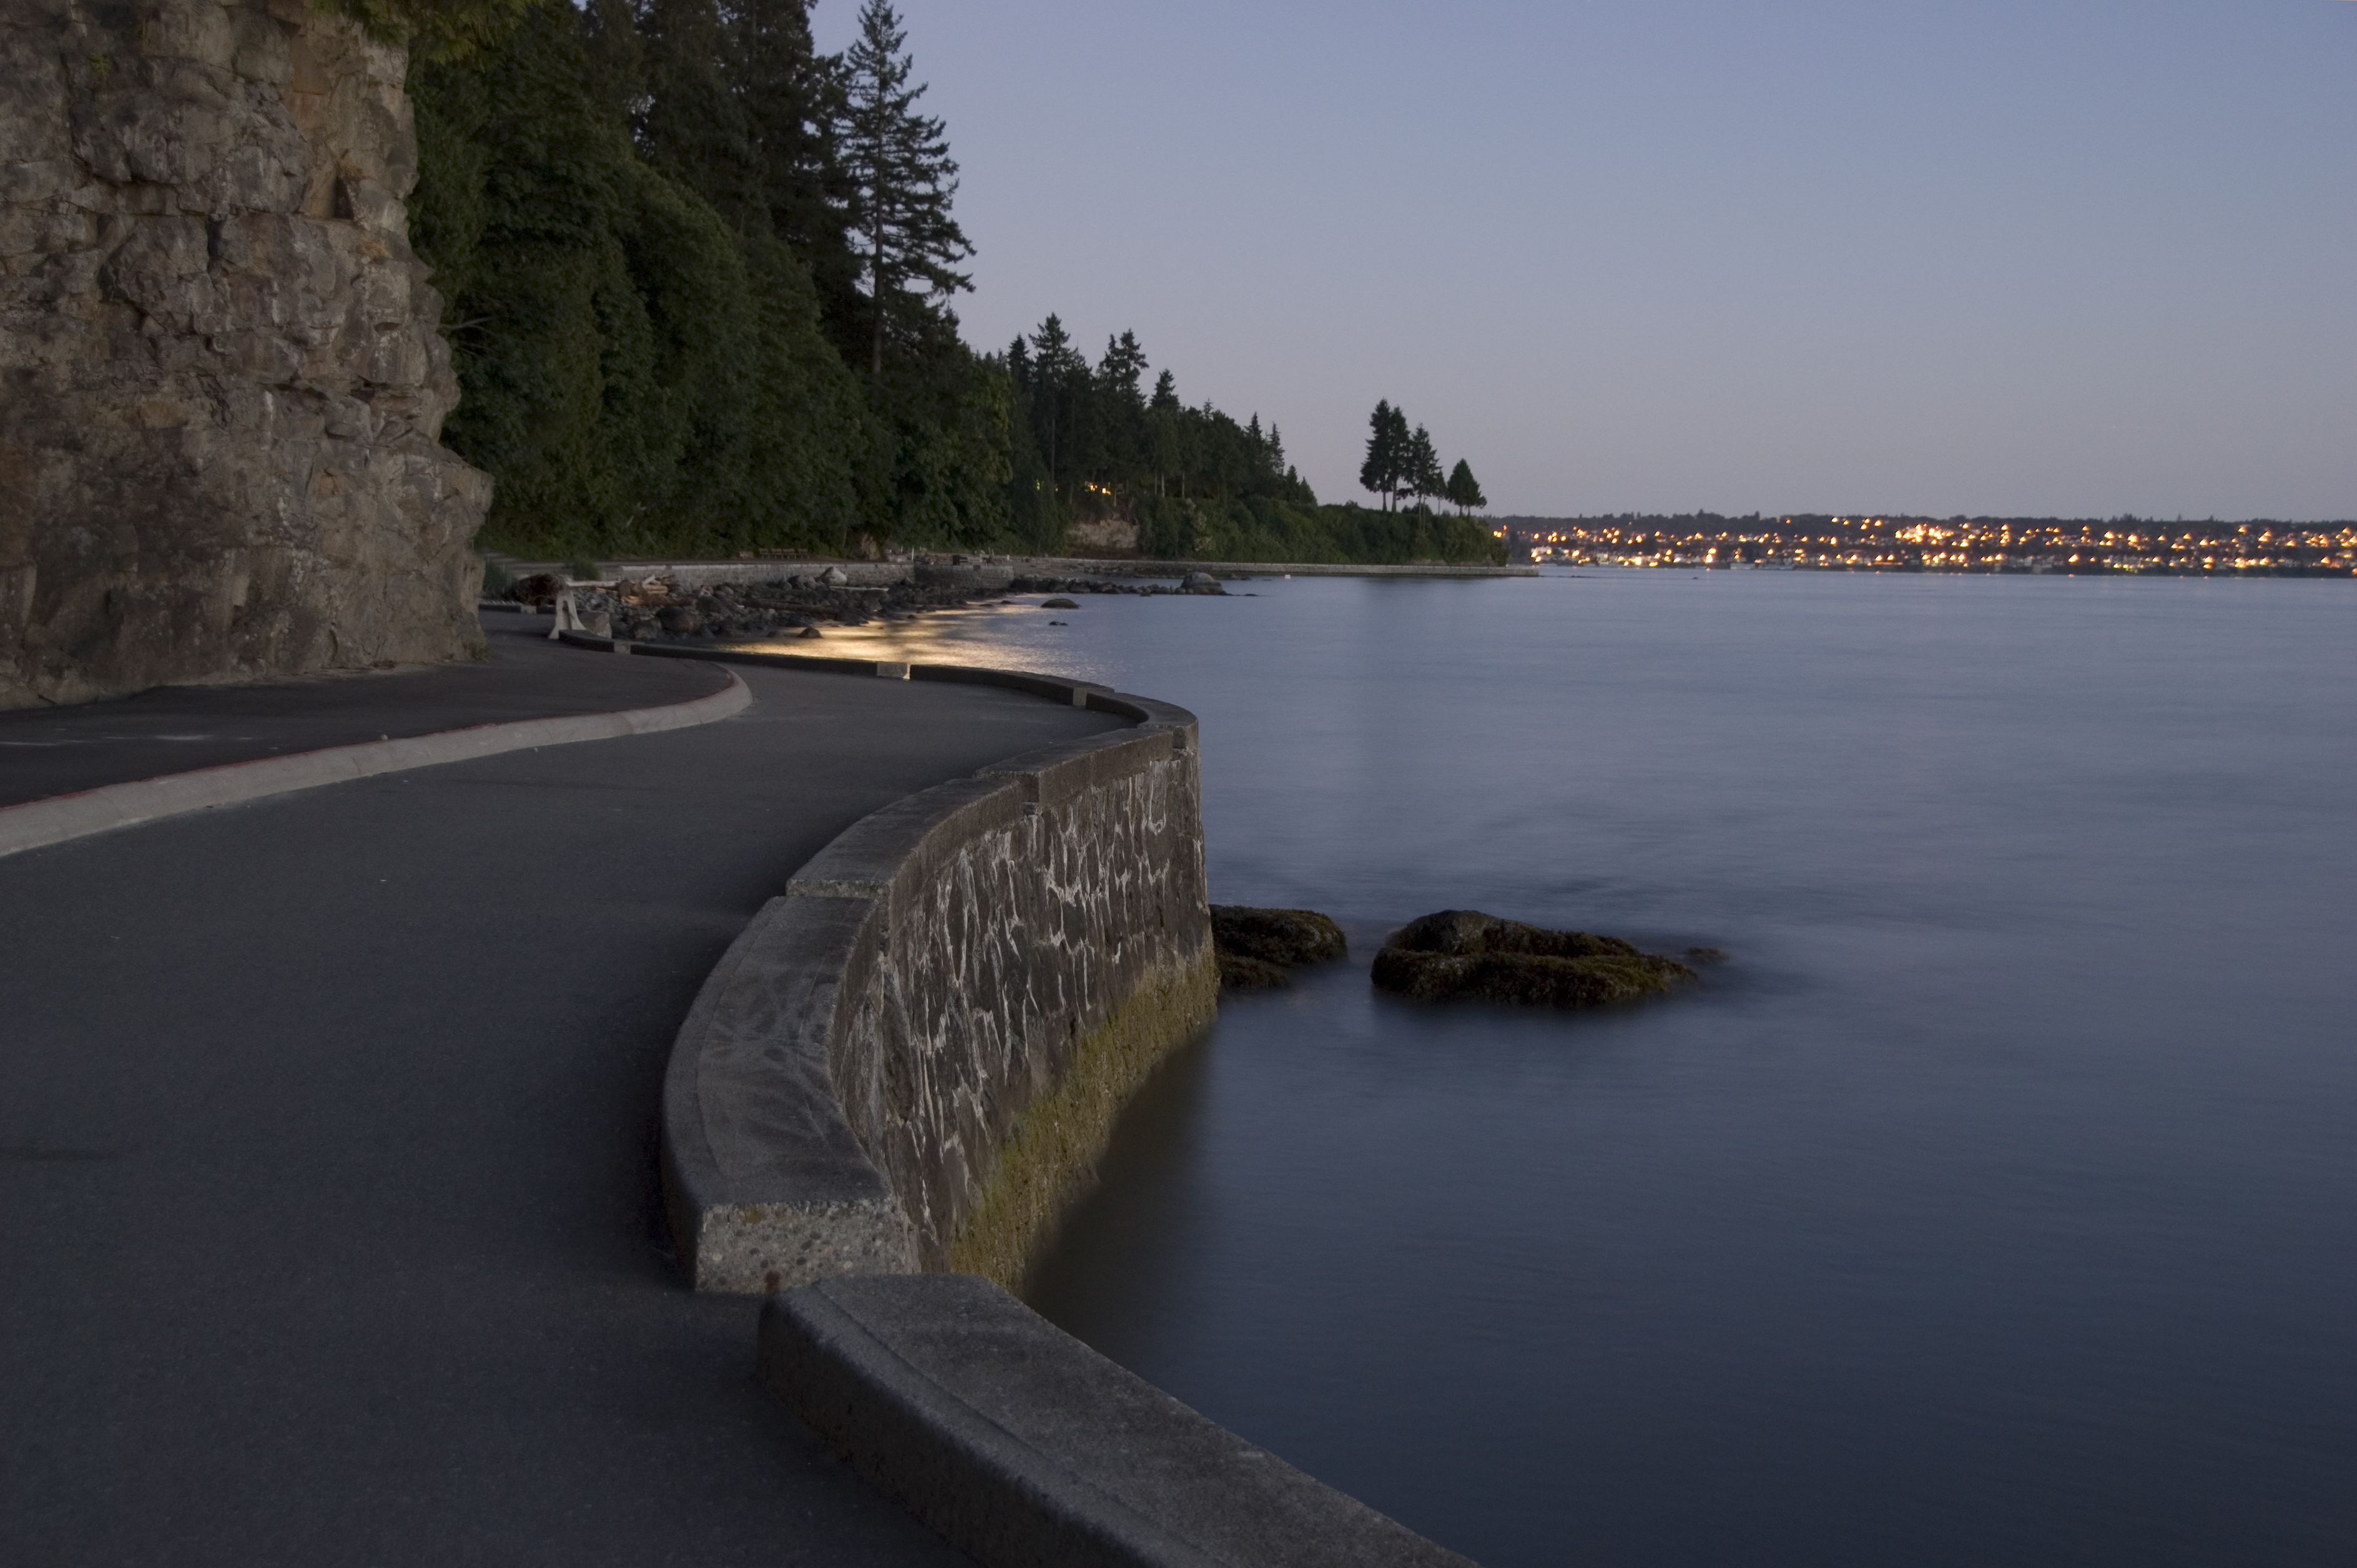 A stretch of paved road running along the waterfront, with Vancouver in the background